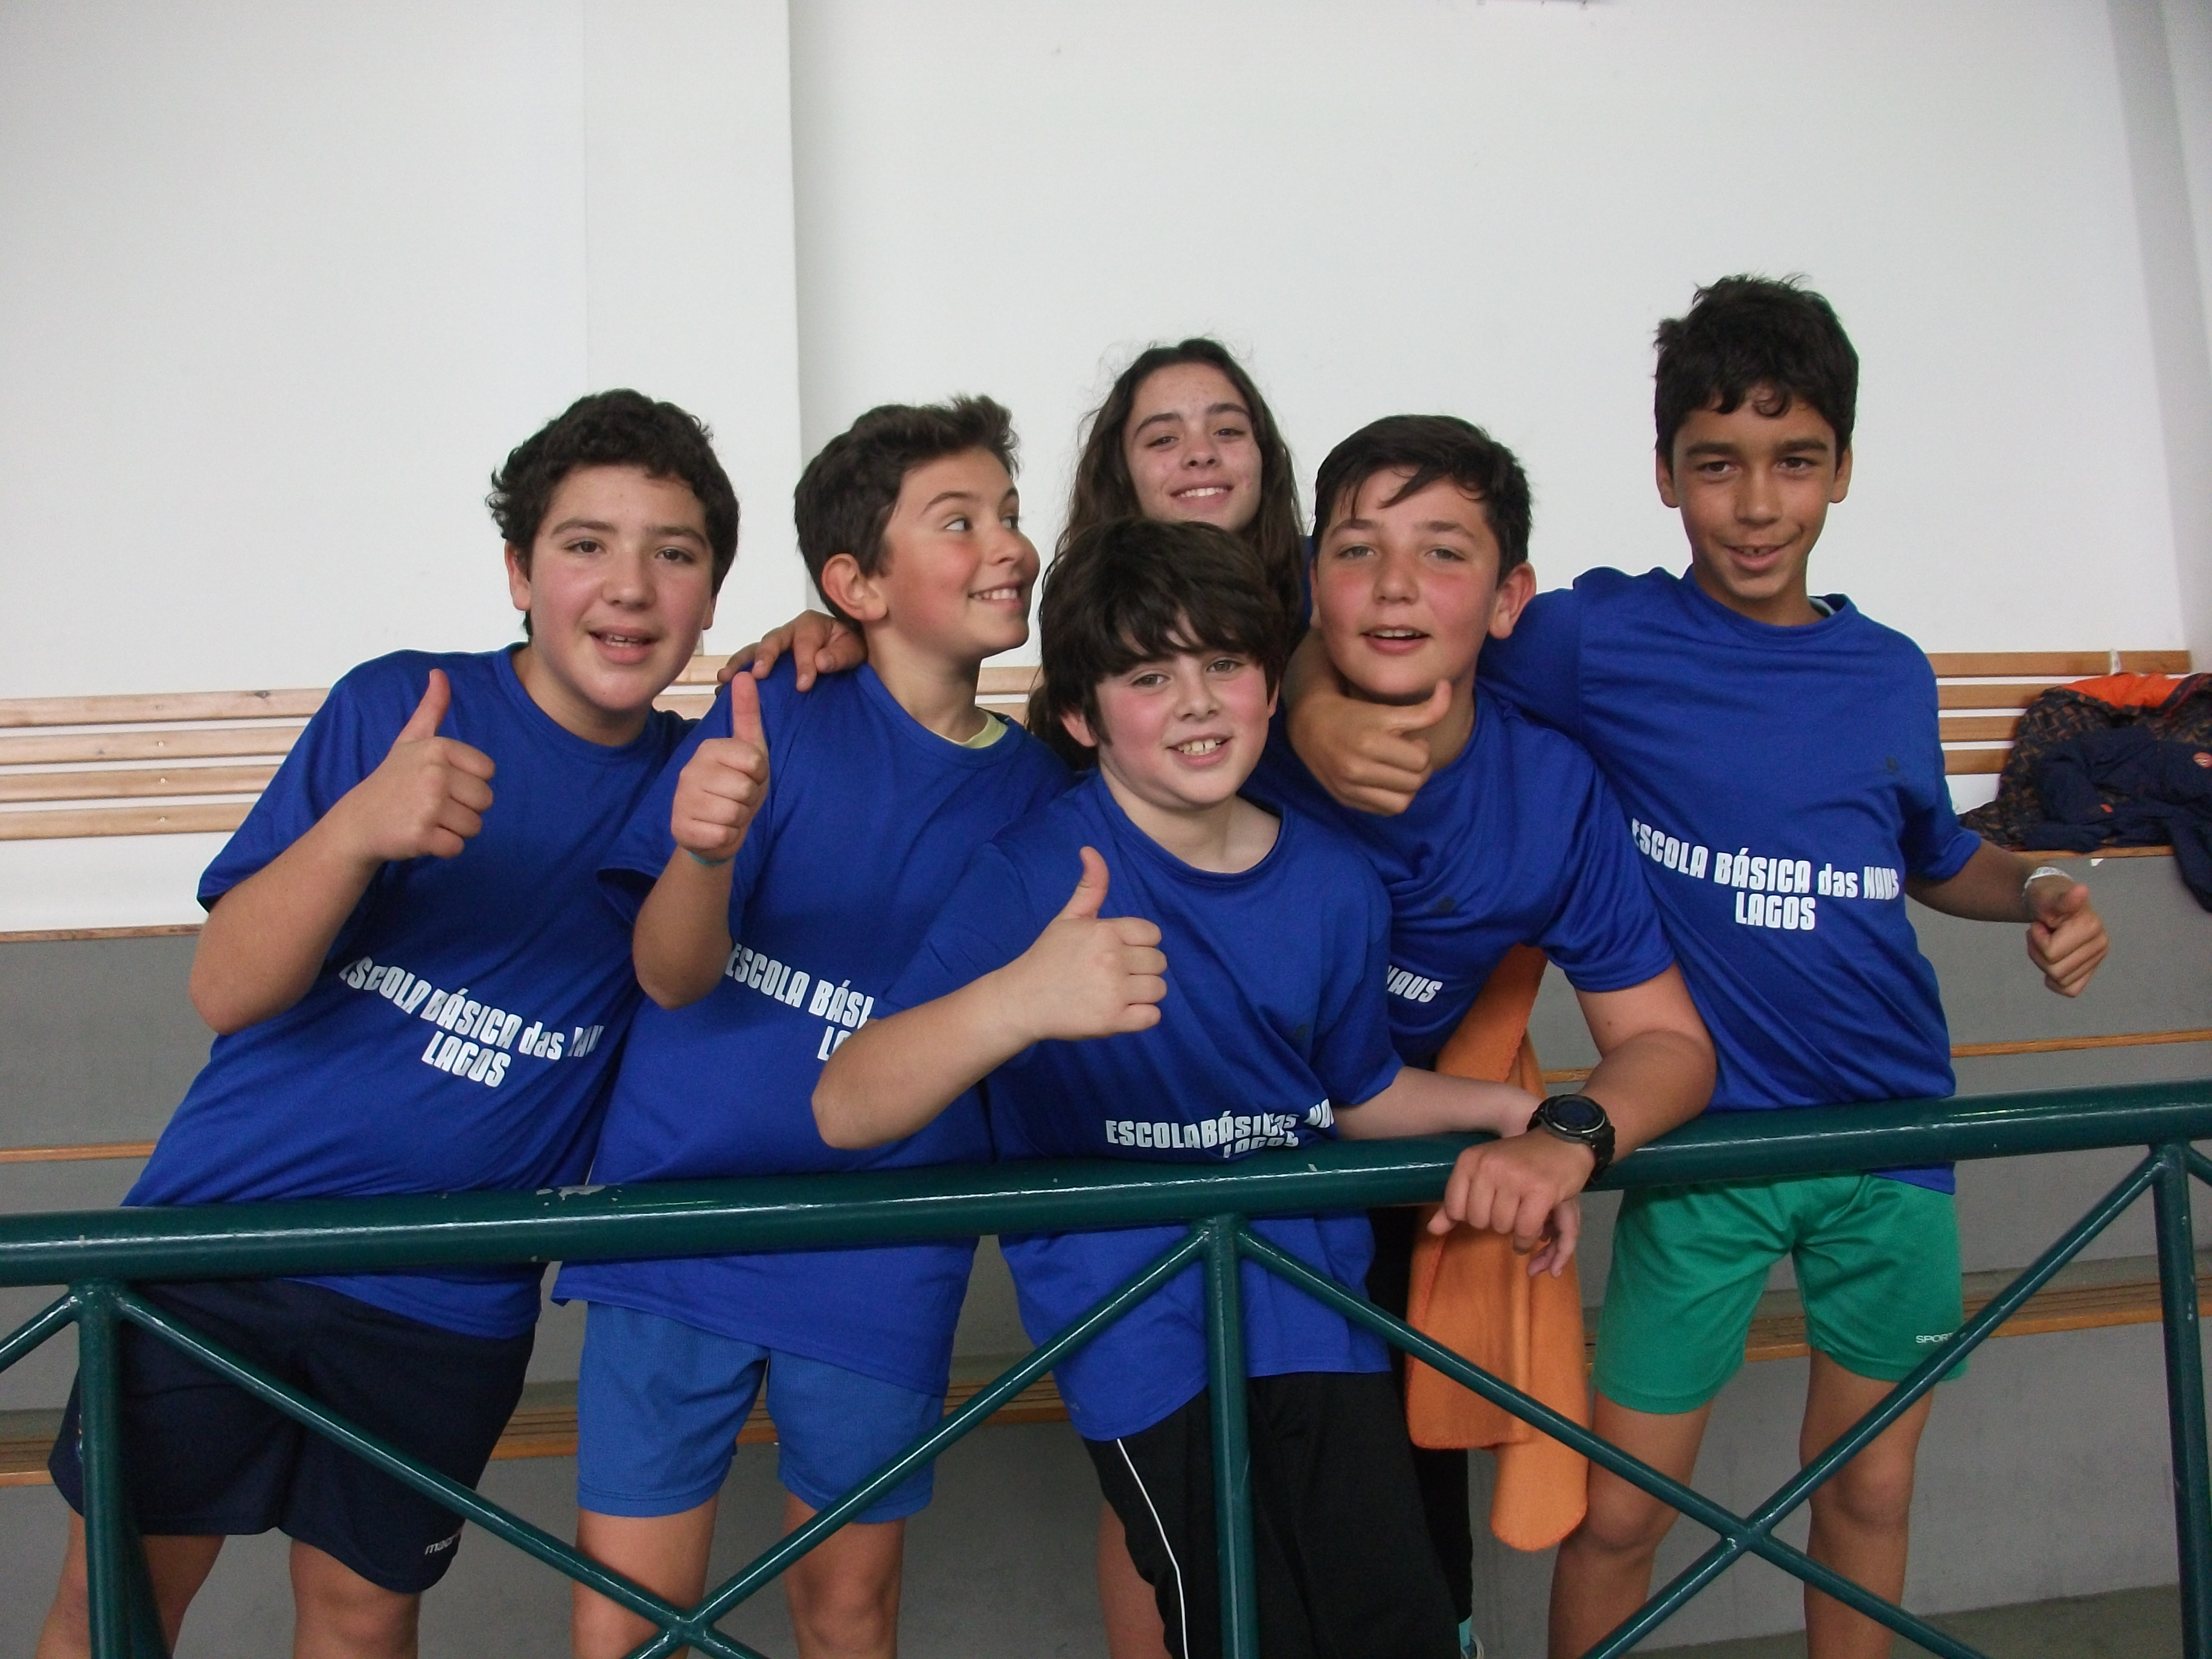 1º Encontro do grupo-equipa de Badminton da Escola das Naus